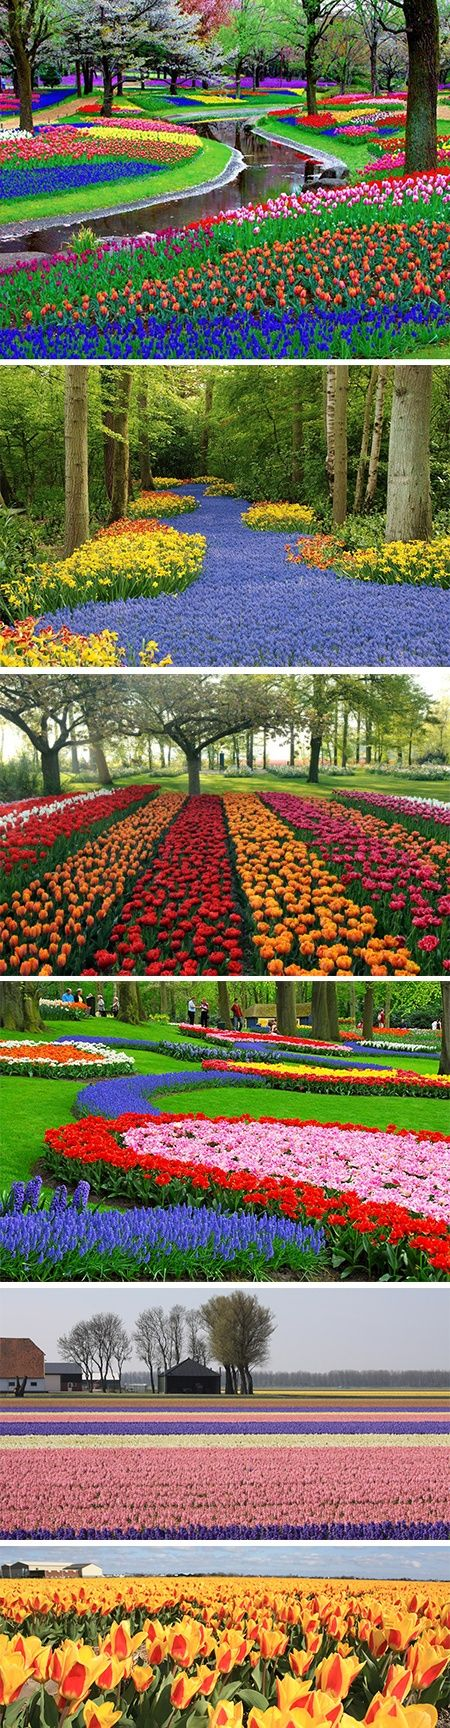 """Keukenhof Garden, Amsterdam   """"The Largest Flower Garden in the World"""". I didn't get a chance to go here when I was in Holland but I would love to see it someday. (SK)"""